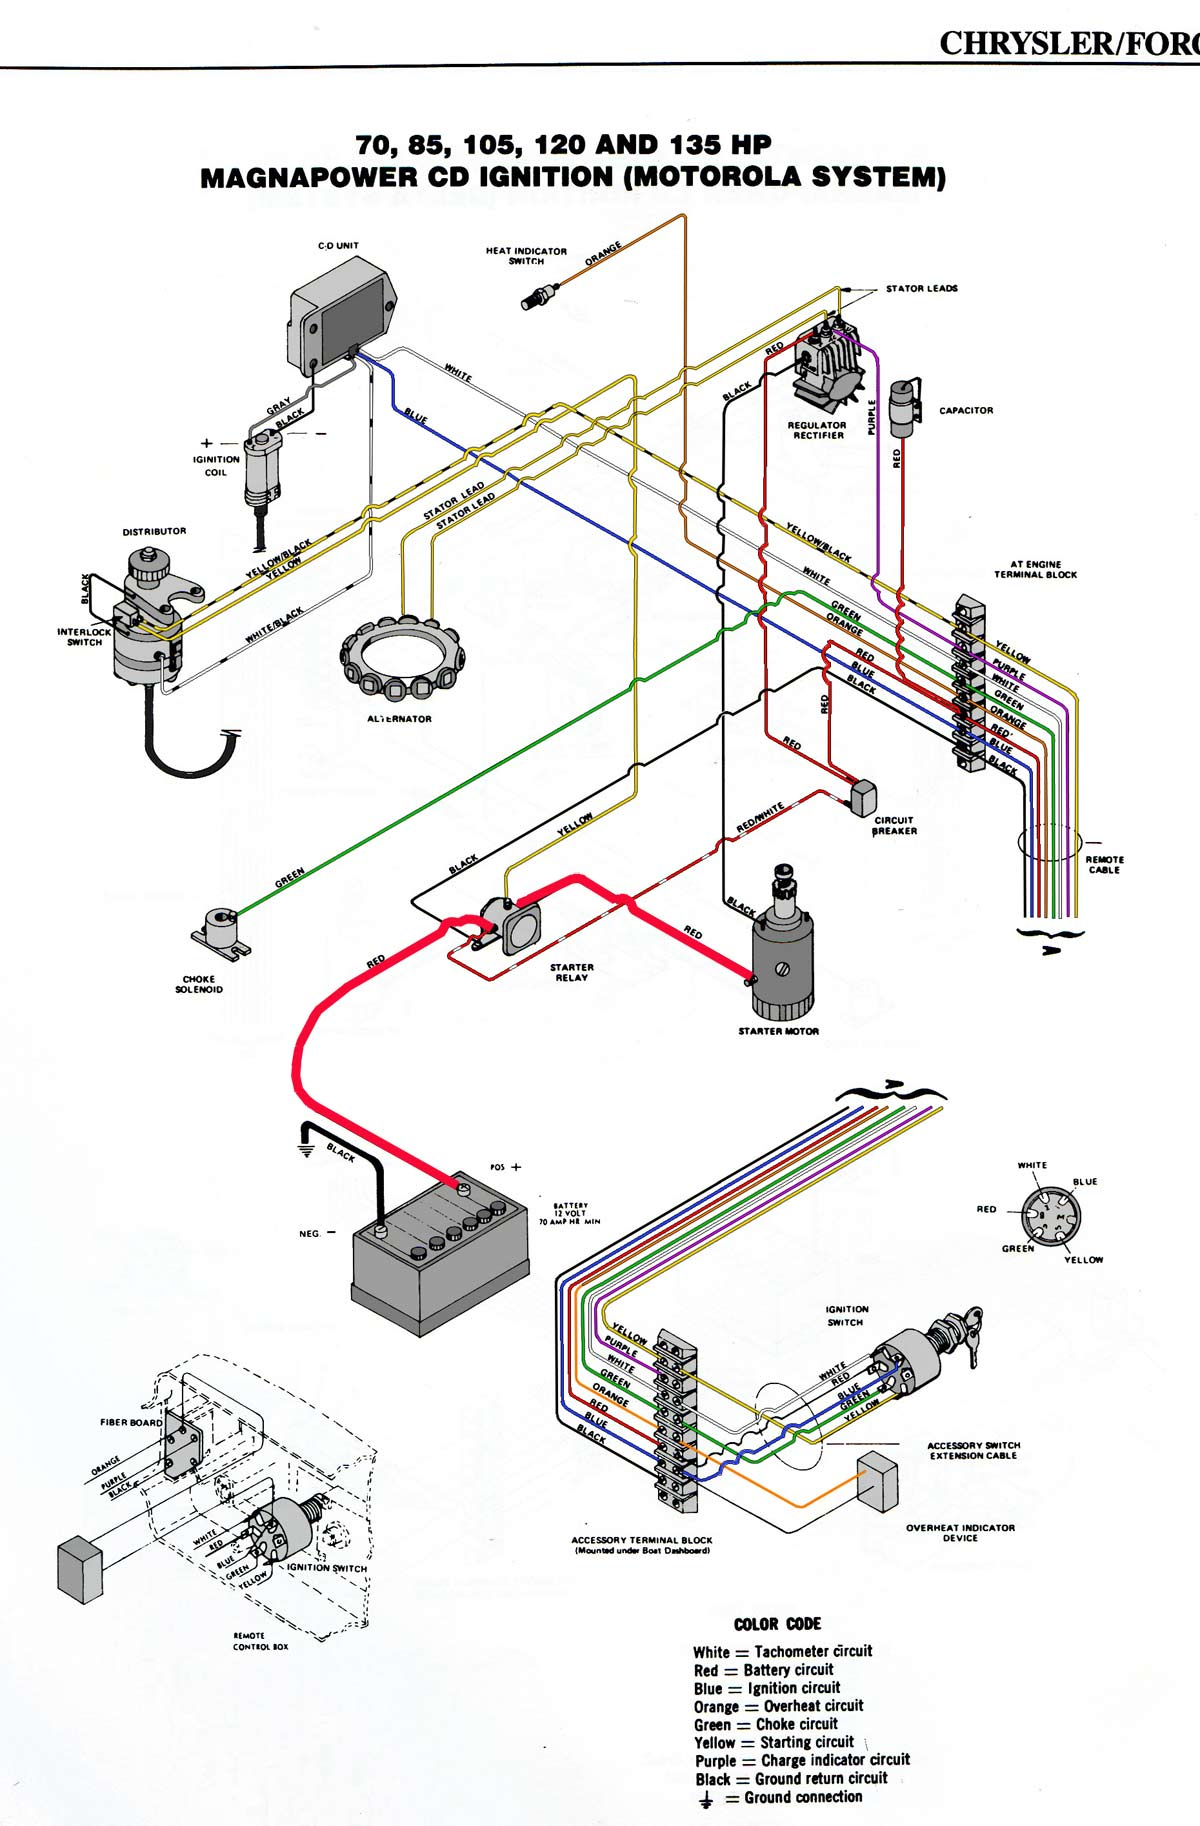 hight resolution of mercury force wiring diagram wiring diagram portal 1981 50 hp johnson outboard wiring diagram 1989 force 50 hp wiring diagram